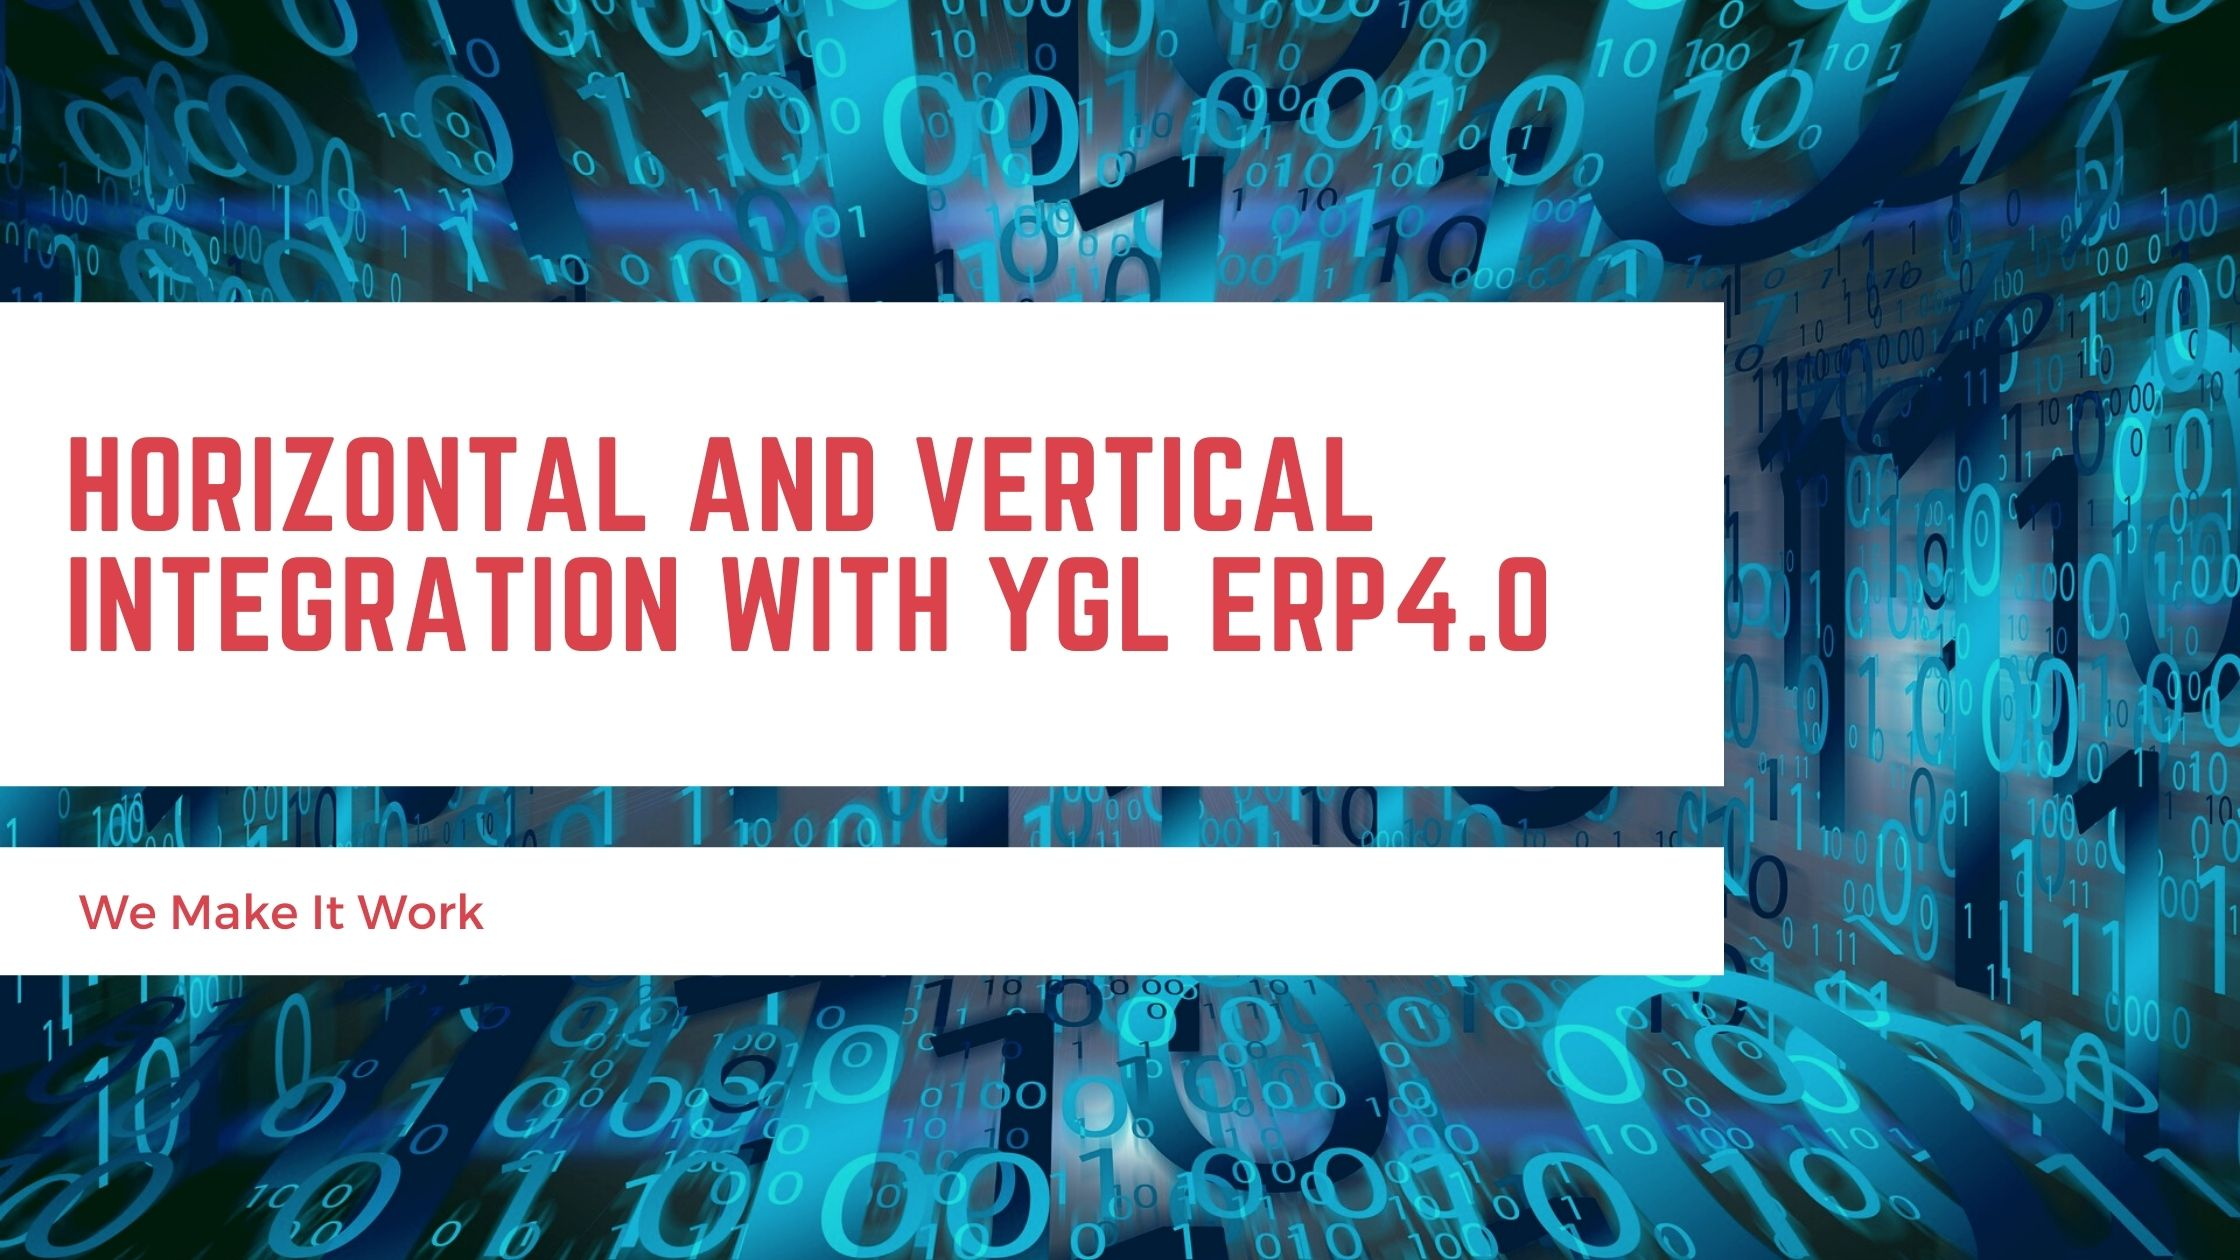 Horizontal and Vertical Integration with YGL ERP4.0